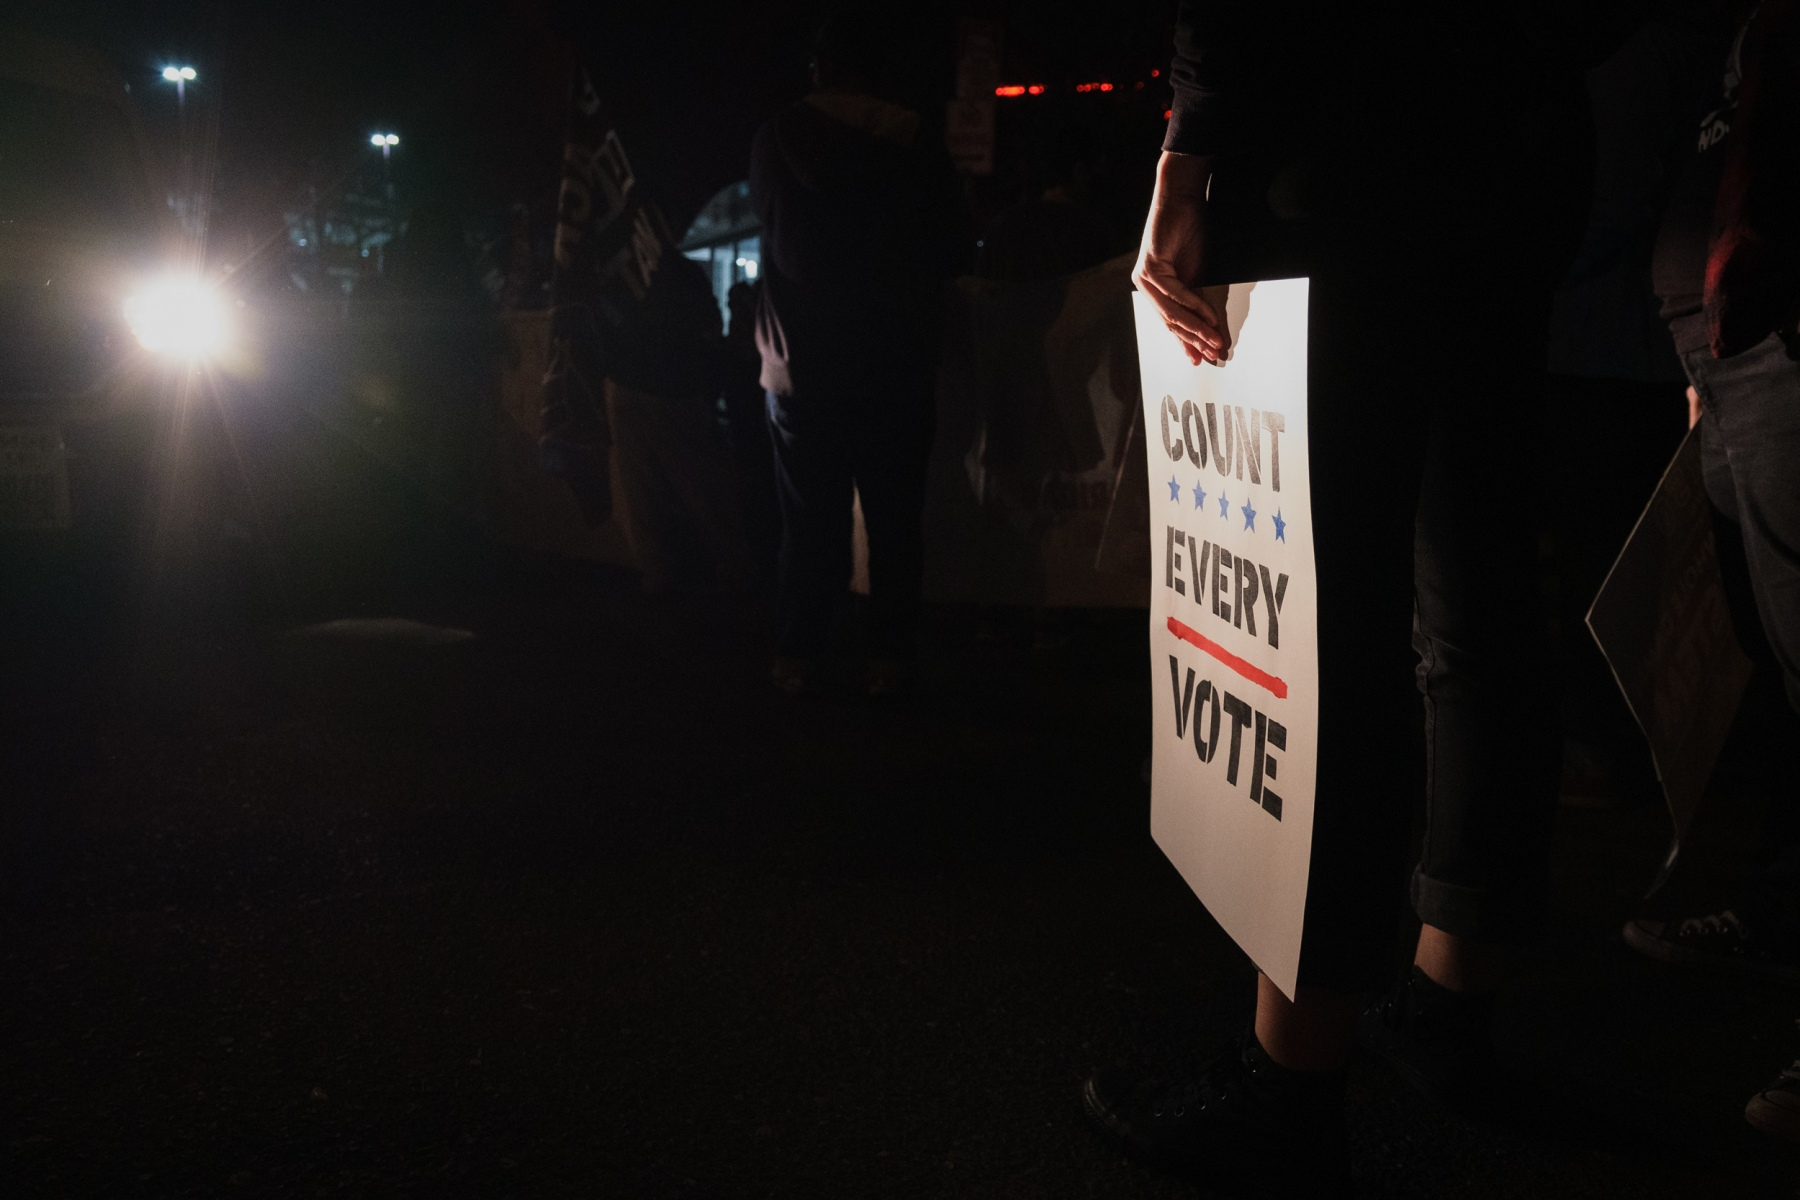 """A protestor holds a sign reading """"Count Every Vote"""" at a march to demand all votes be counted in the 2020 presidential election in Minneapolis on November 4, 2020, just one day after Election Day."""